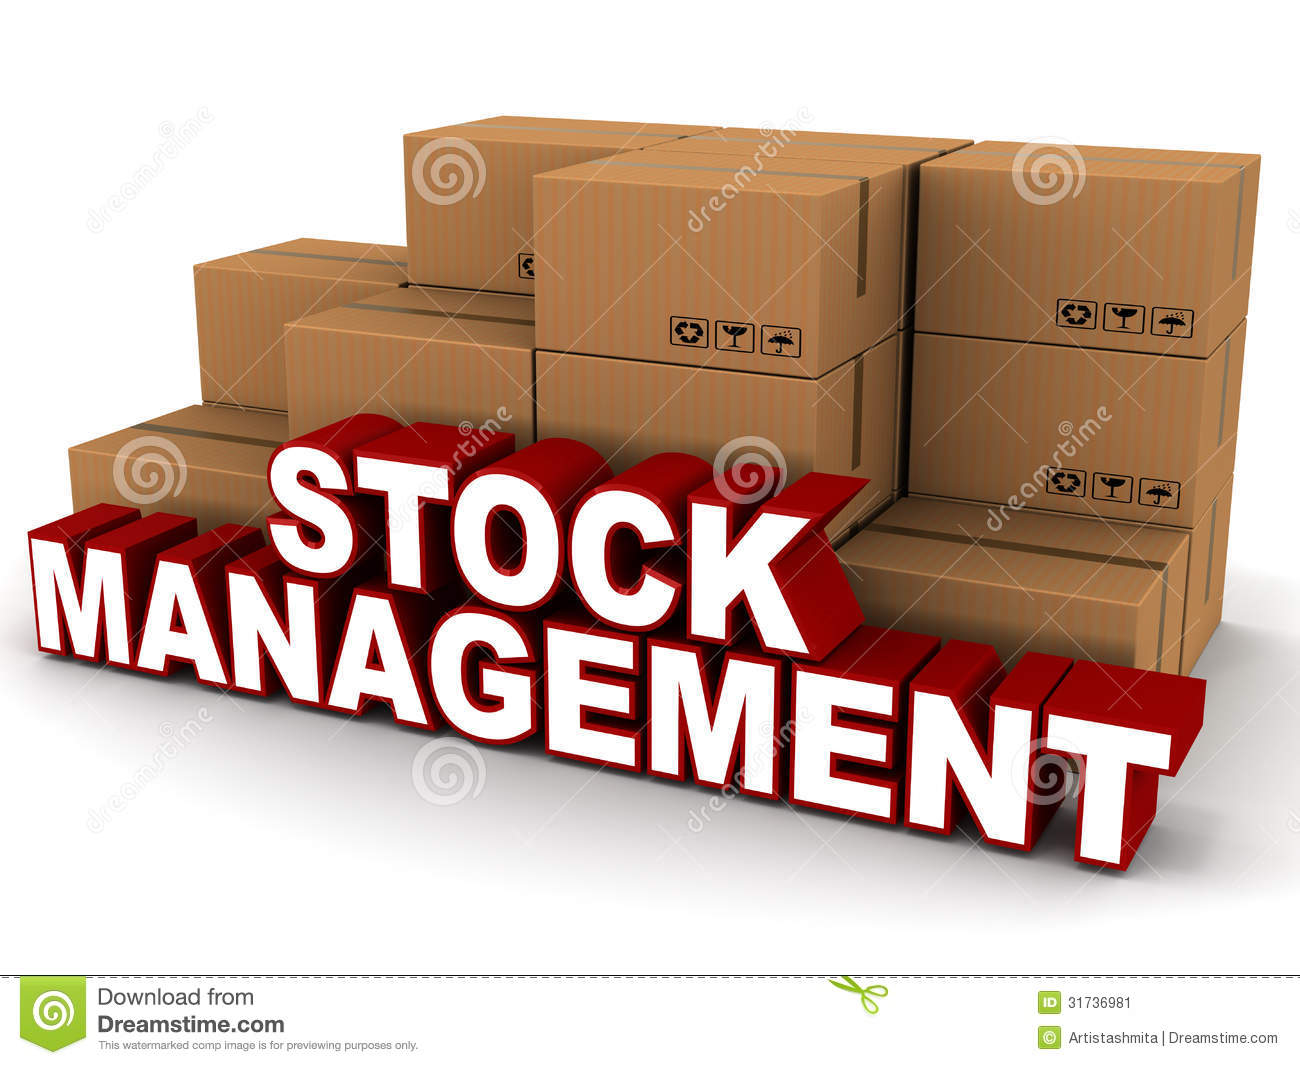 ... management words next to boxes of stock inventory on white background